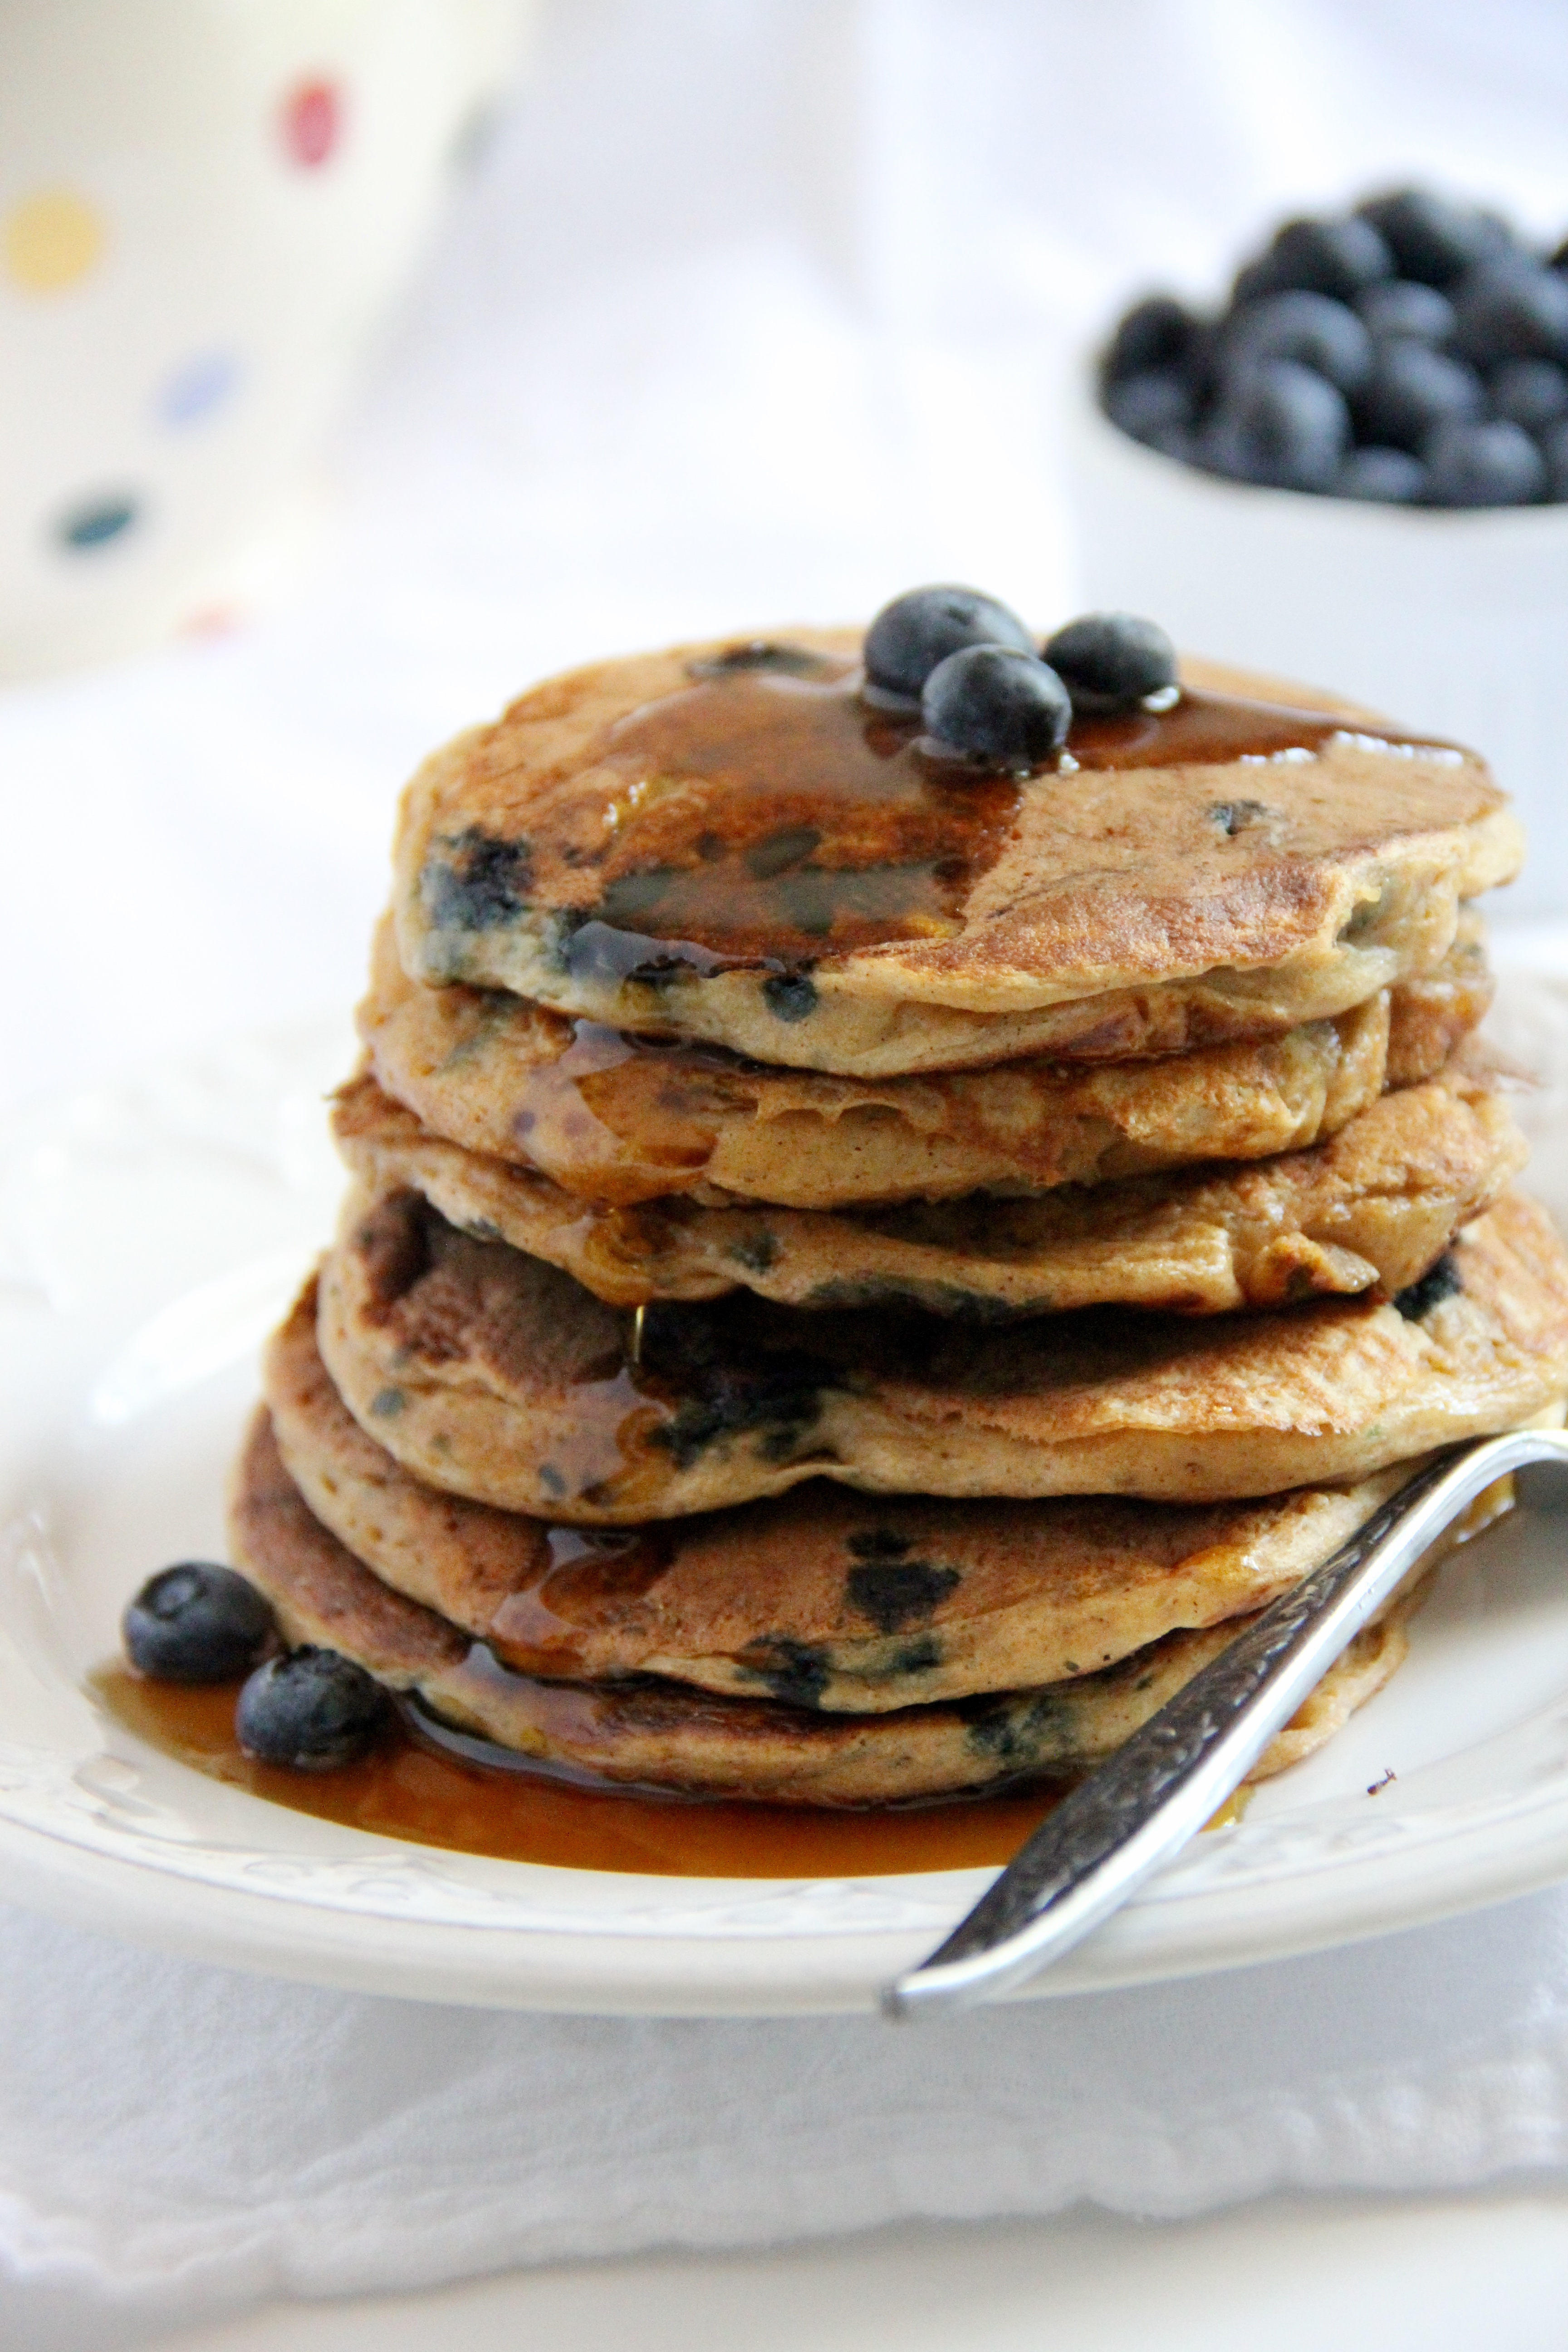 Pancake pancakes - a delicious and healthy dish